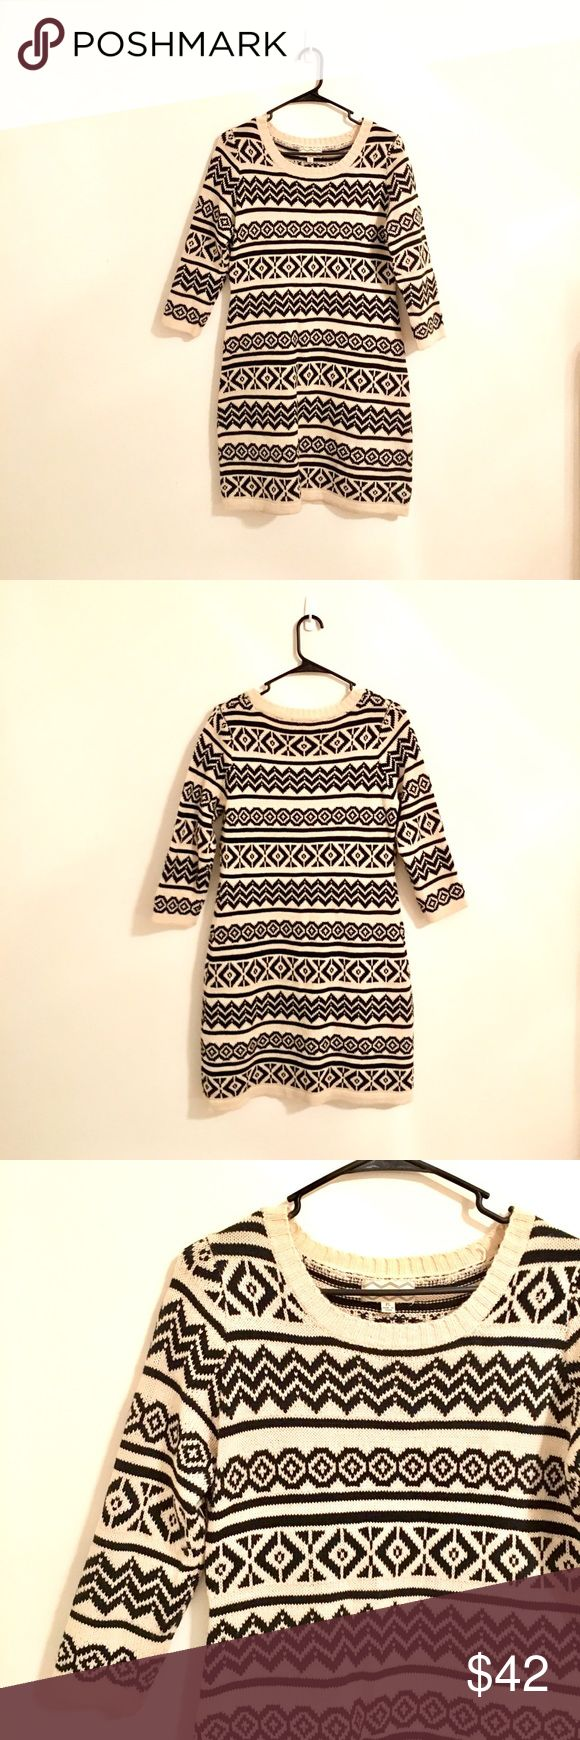 Aztec Sweater Dress Cream & black sweater dress. Super comfy & perfect for fall/winter!! Can be worn with leggings or as a dress on its own. Only worn a few times & in great condition! Could fit a size M-L. Pink Rose Dresses Midi